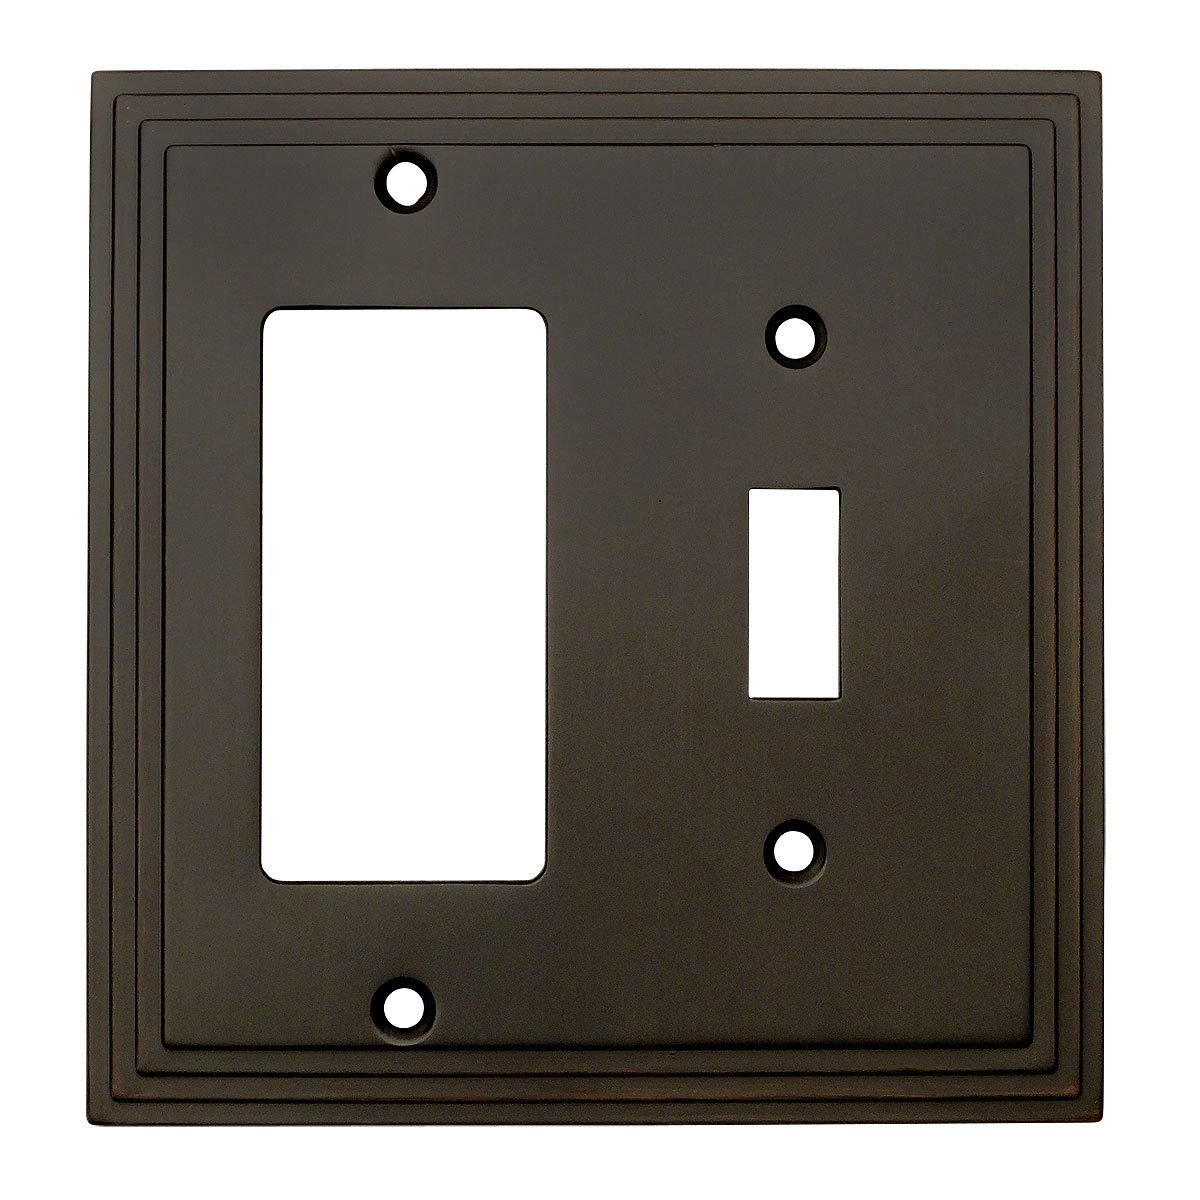 Oil Rubbed Bronze Toggle Amp Decora Gfci Rocker Combo Wall